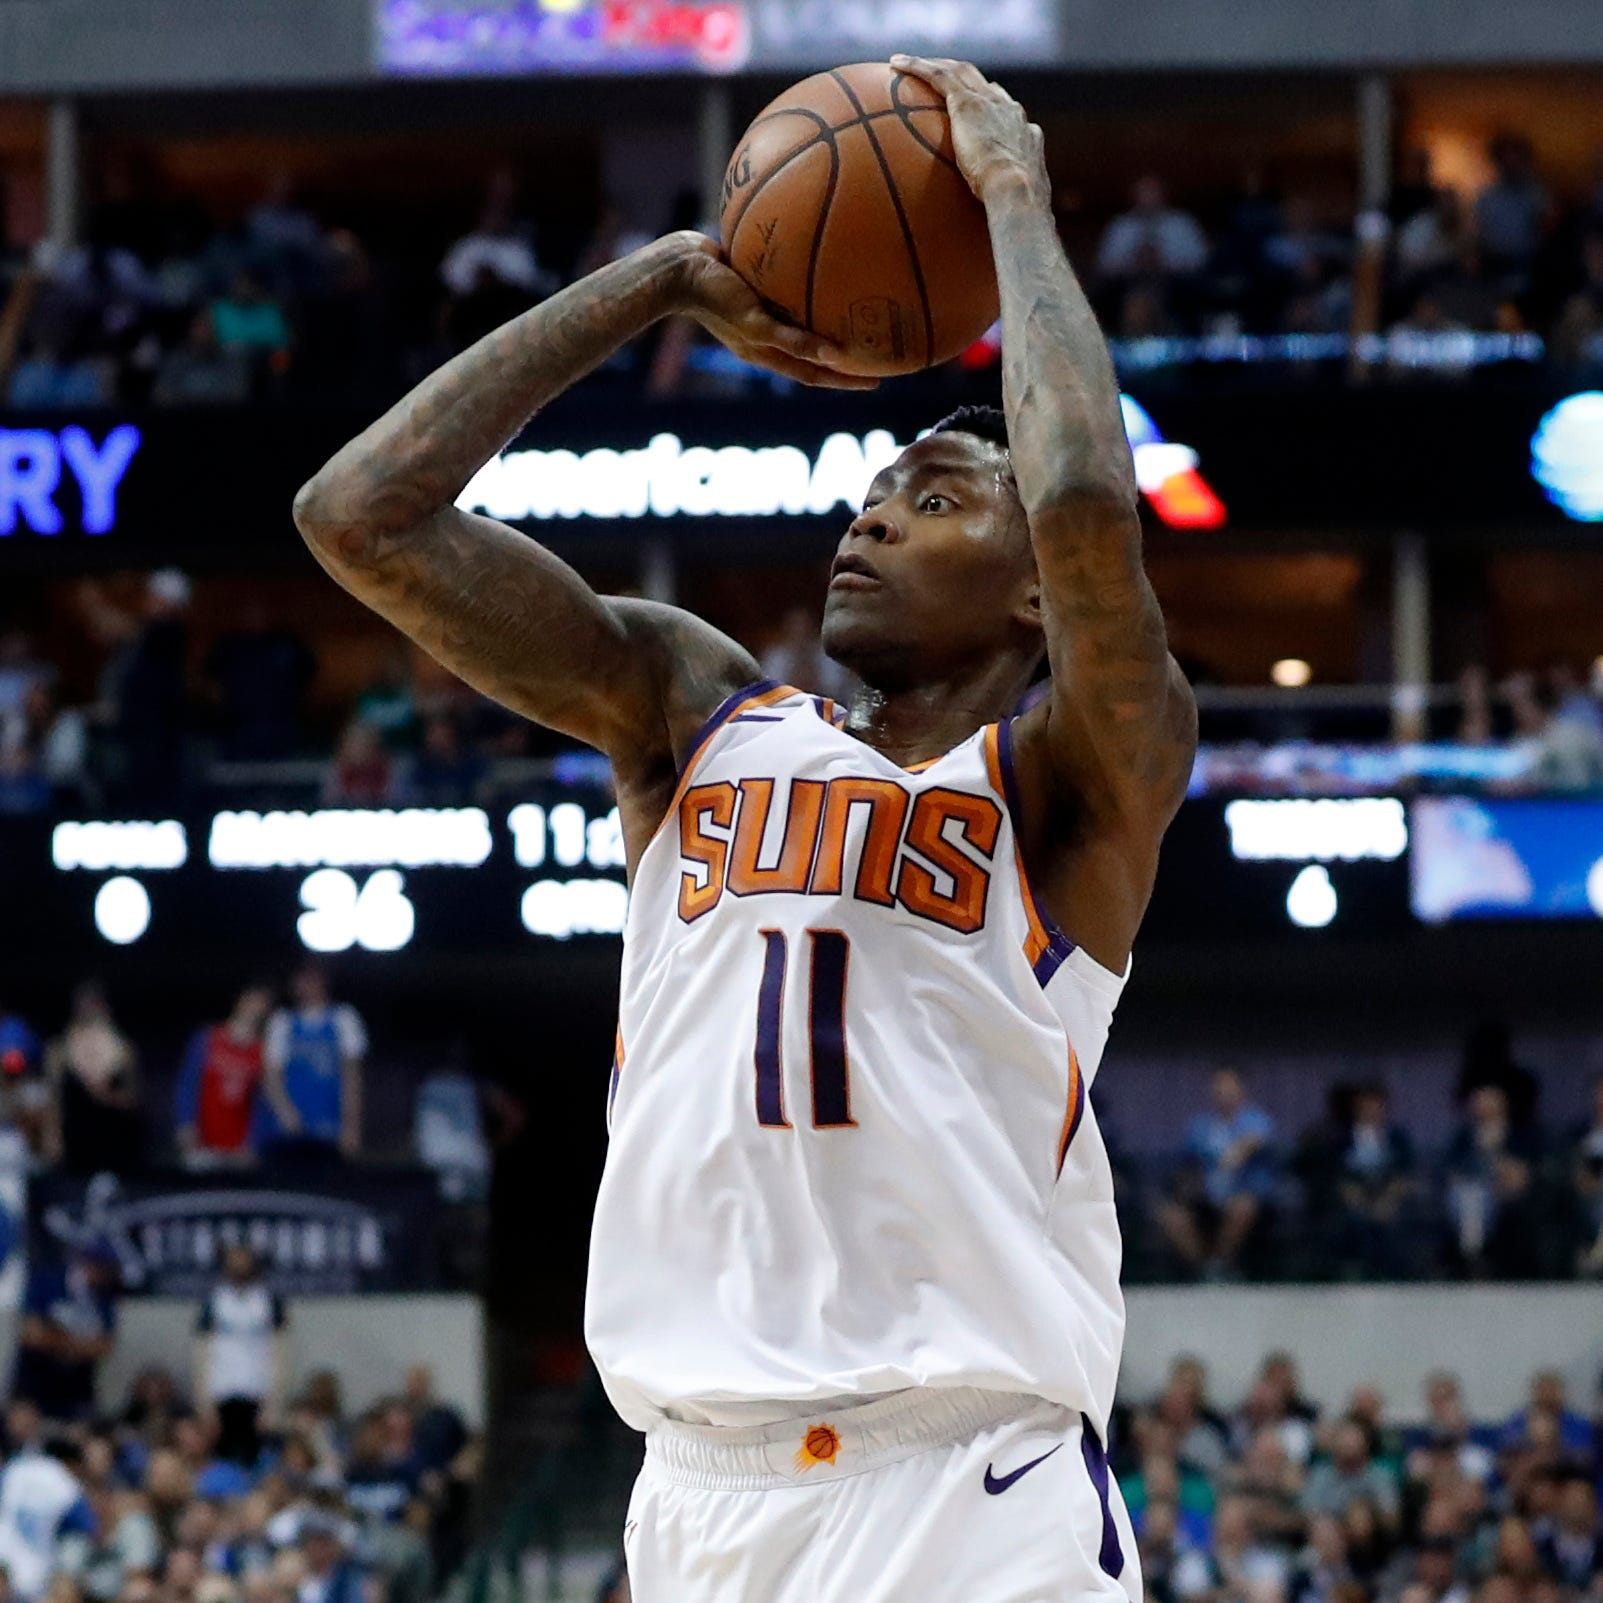 Jamal Crawford drops 51 points in Suns' season-ending loss to Dirk Nowitzki, Mavericks